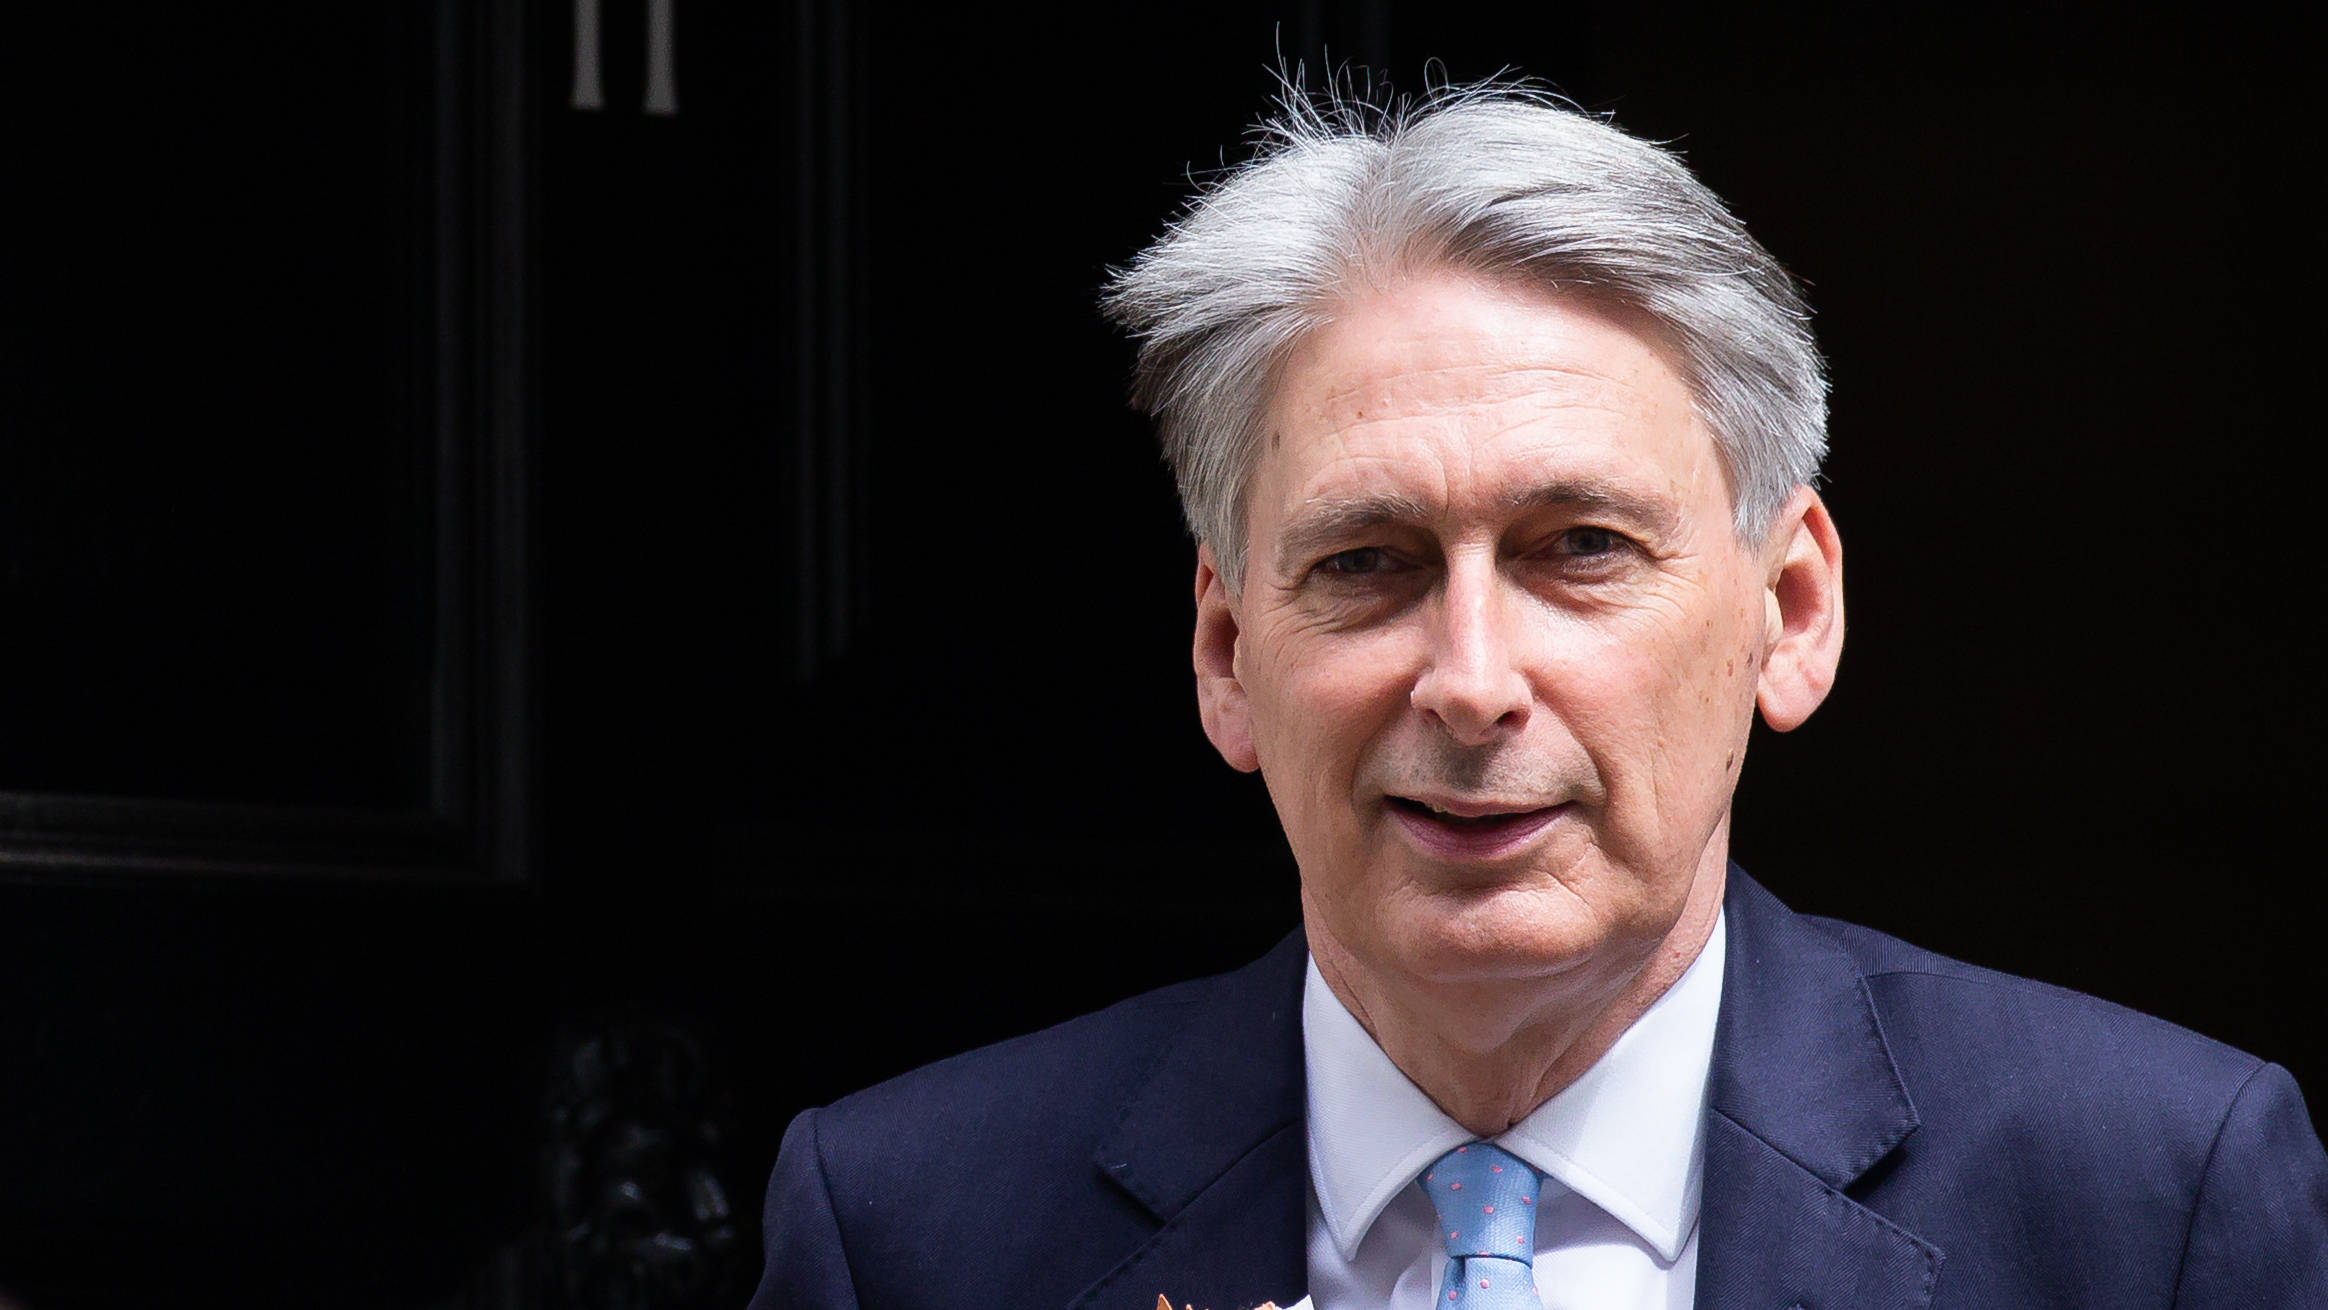 Philip Hammond To Resign As Chancellor Before Wednesday